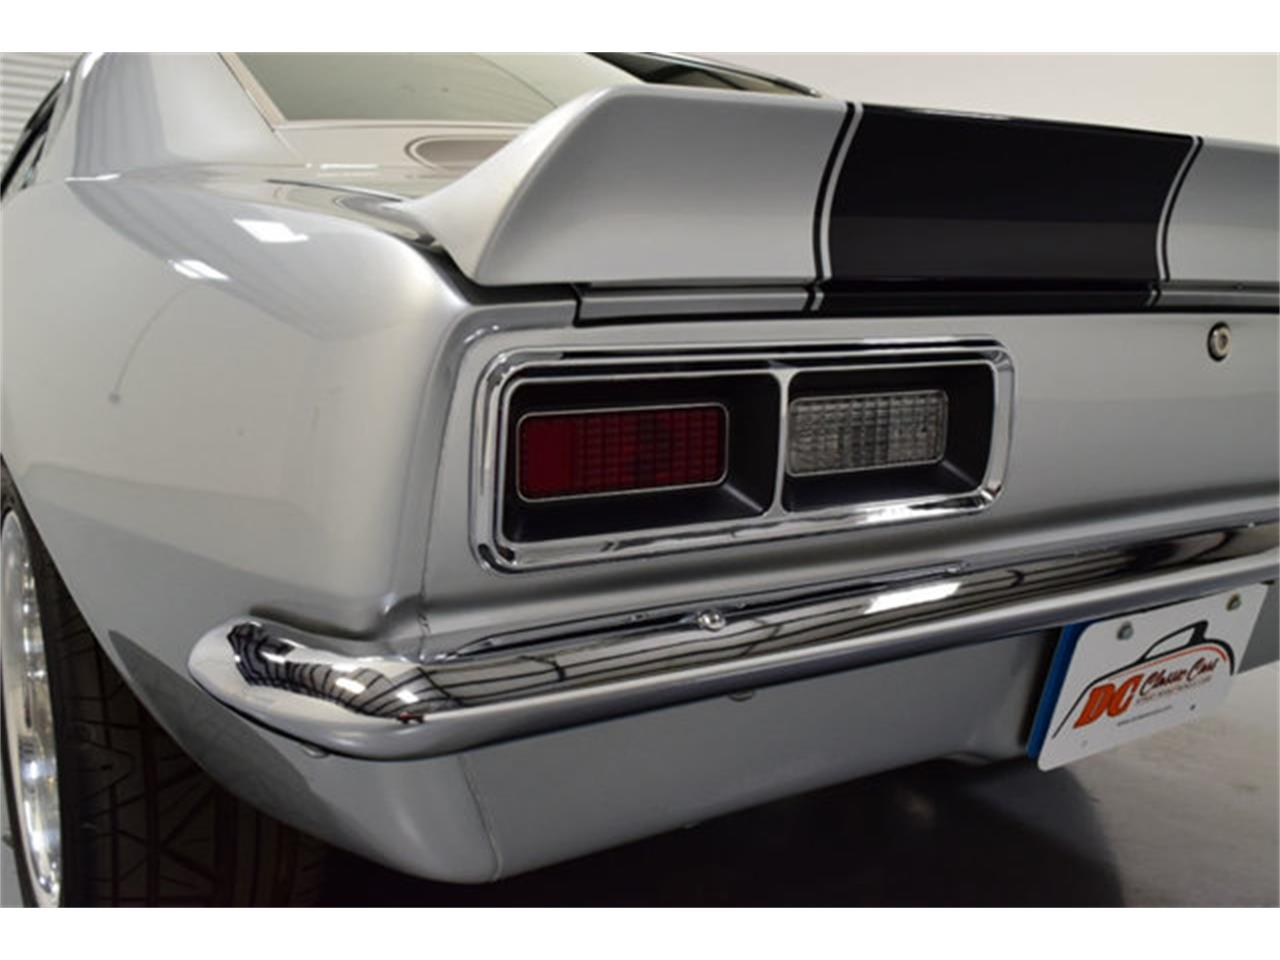 Large Picture of Classic 1968 Camaro located in North Carolina Offered by Shelton Classics & Performance - LG6F